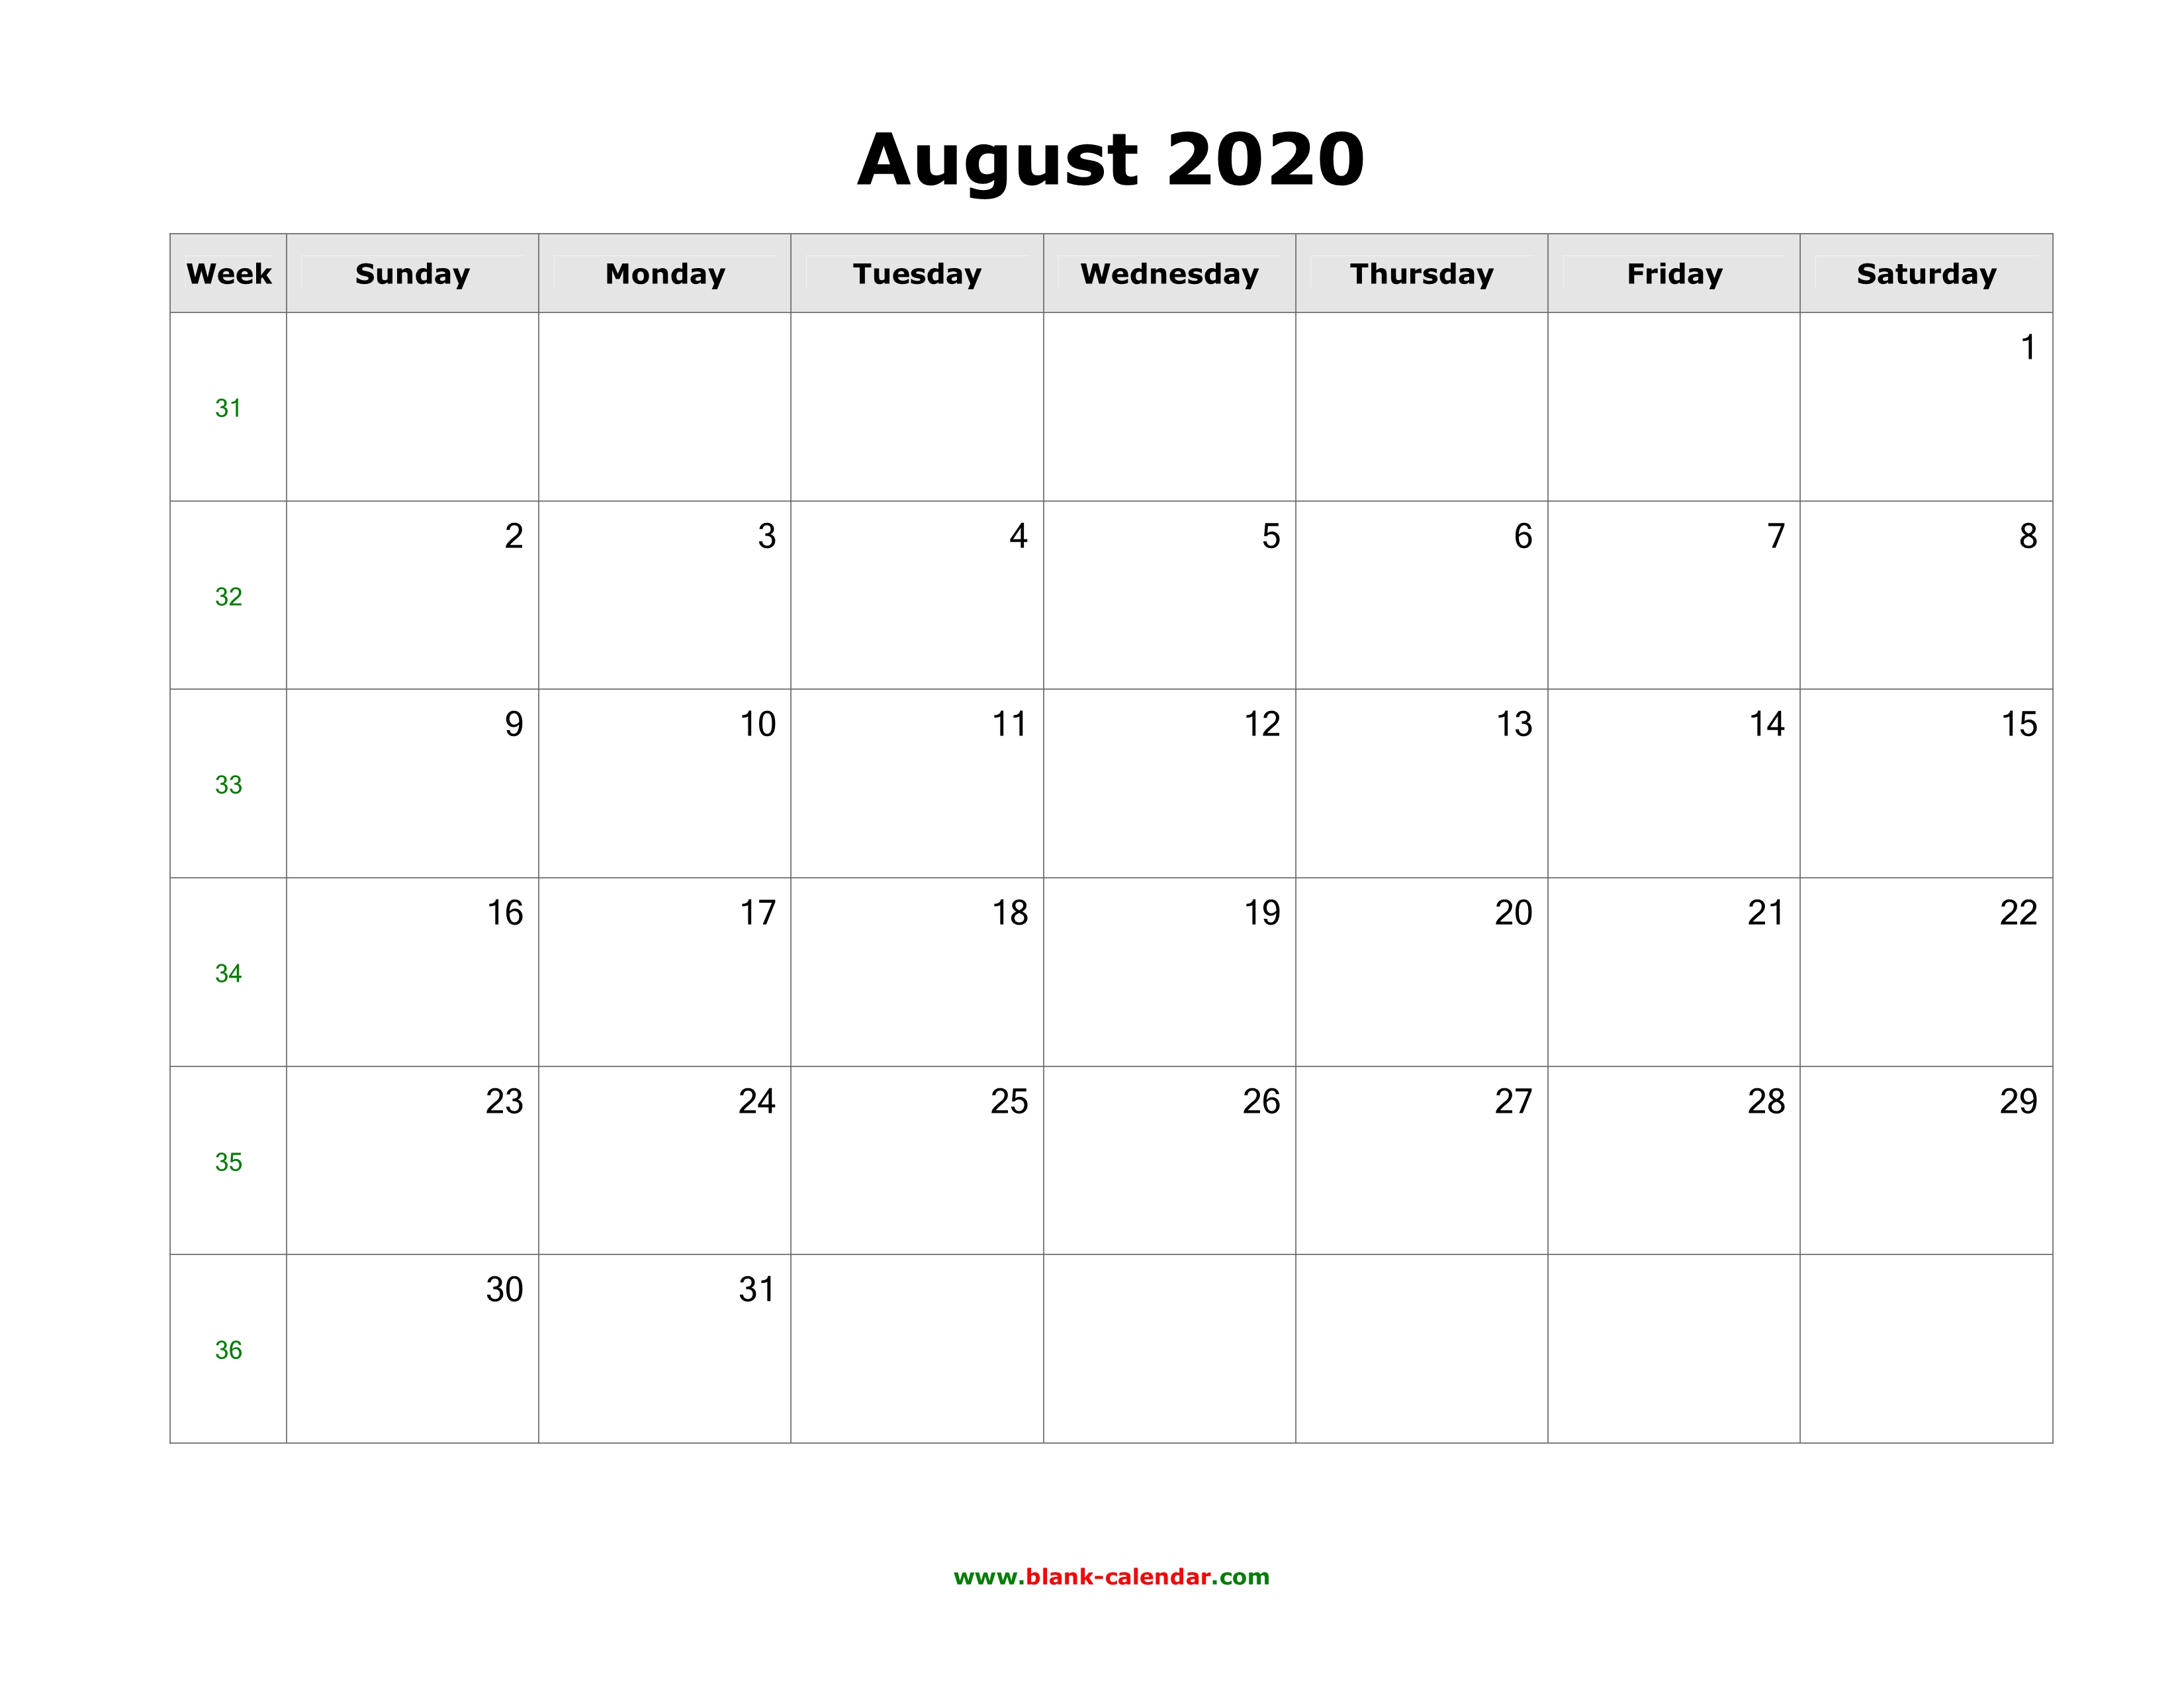 August Calendar 2020 With Holidays Download August 2020 Blank Calendar with US Holidays (horizontal)